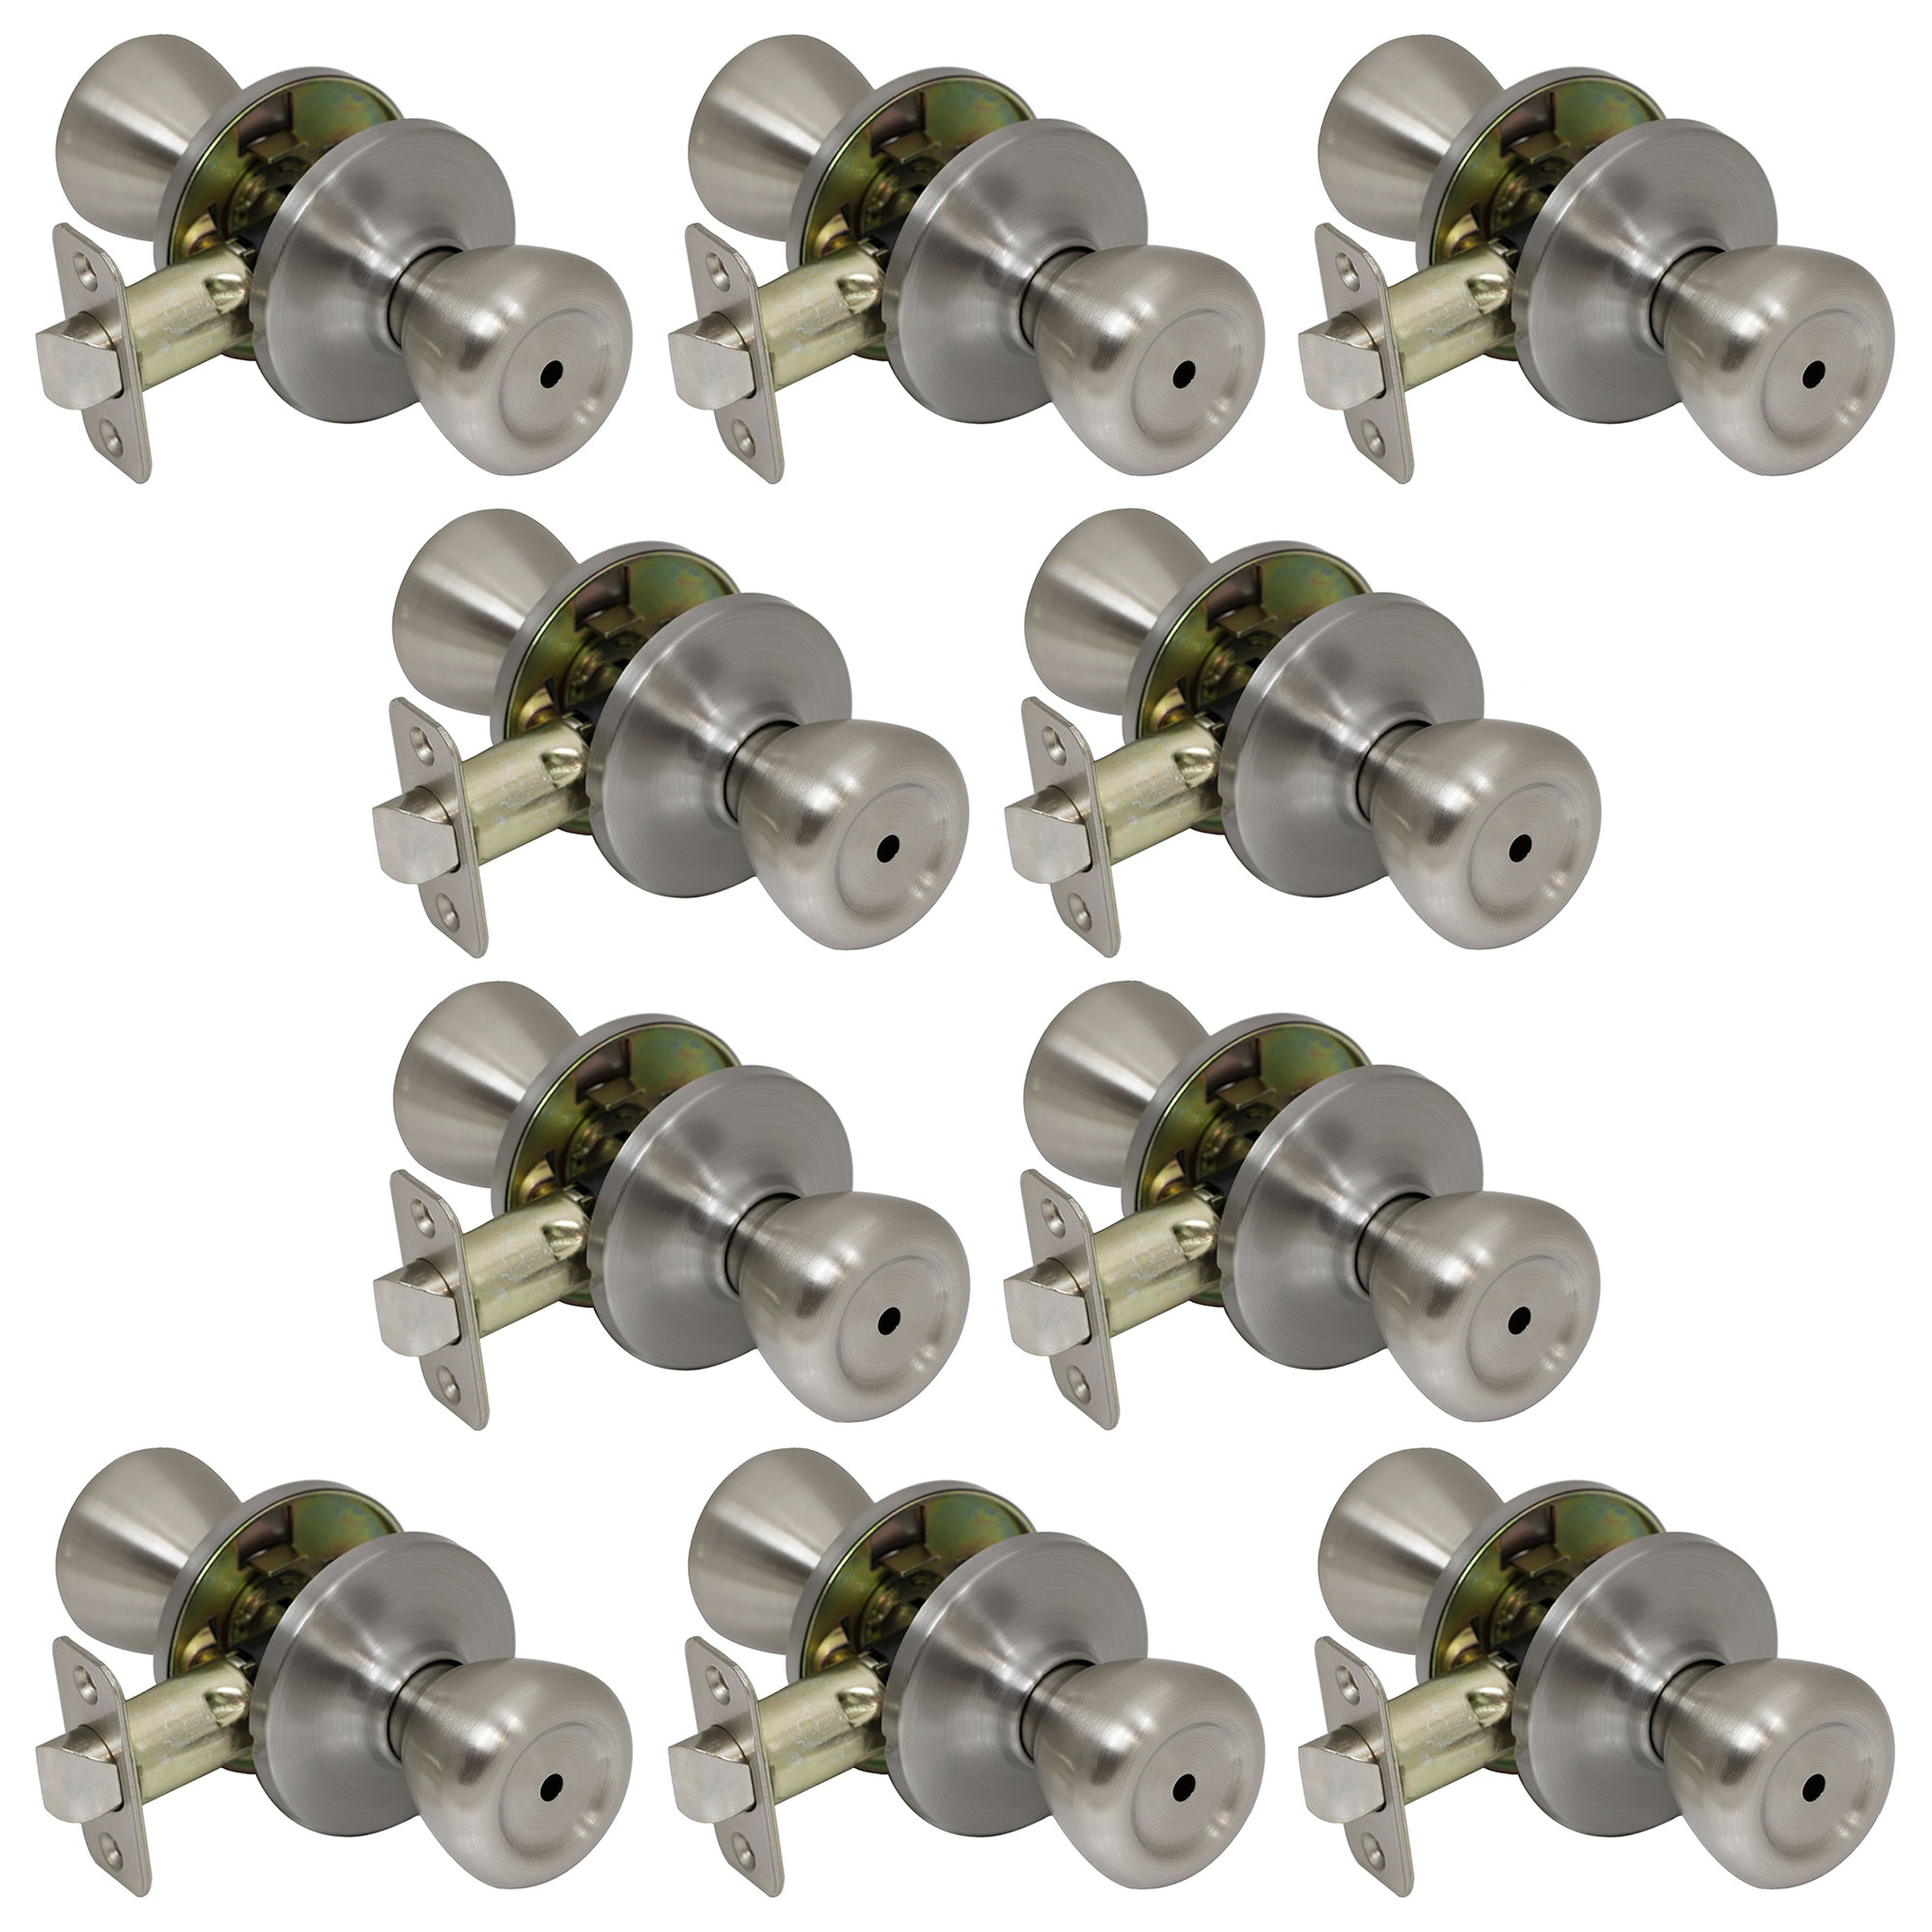 10 Pack of Pro-Grade Classic Privacy Bed Bathroom Door Knobs Handles, Satin Nickel